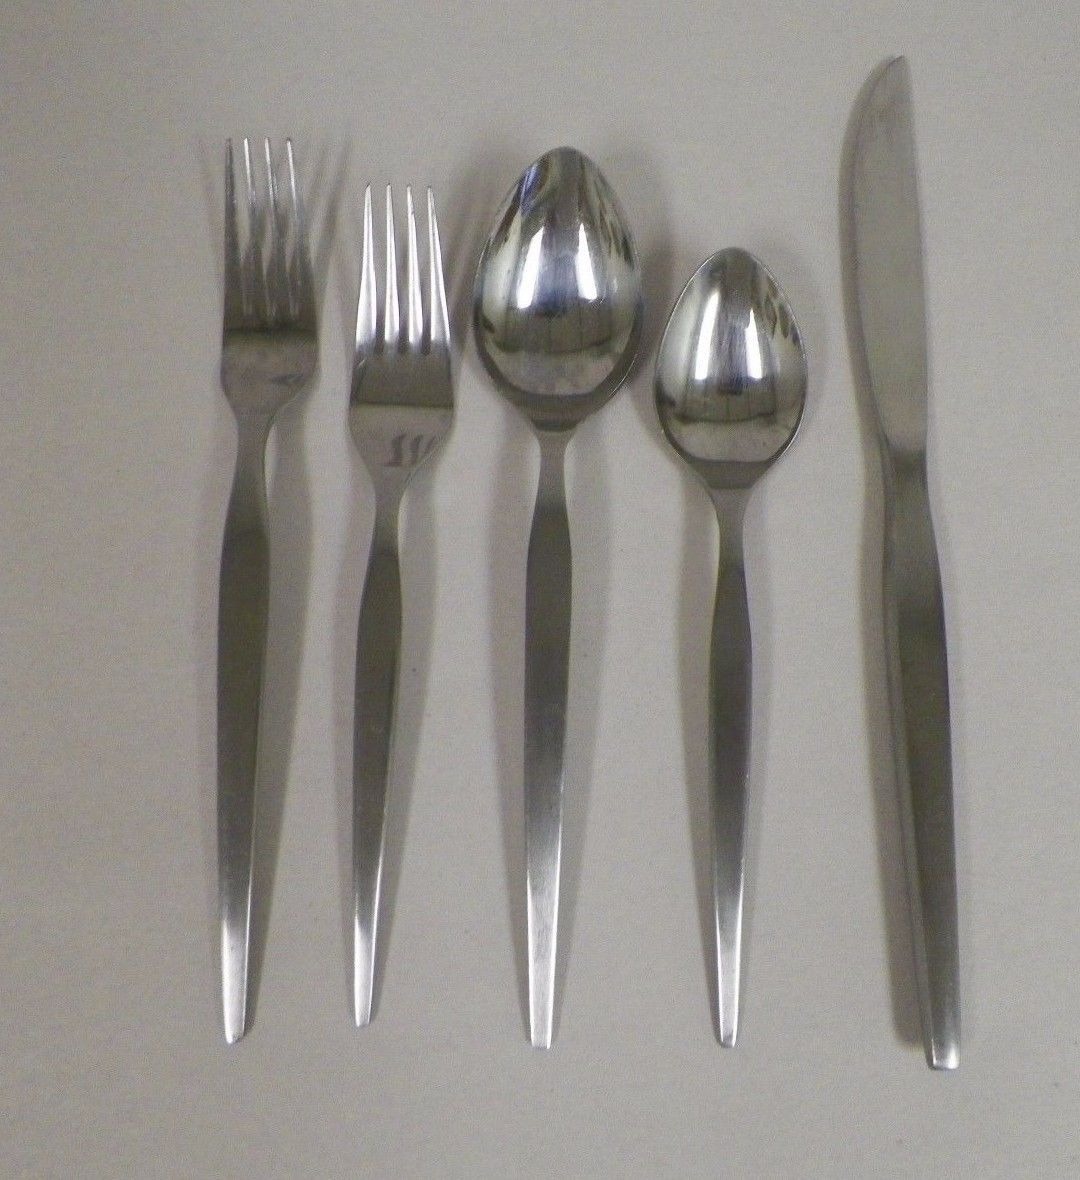 Oneida USA BANCROFT FORTUNE Spoons Forks Knives 18//8 Stainless Flatware CHOICE